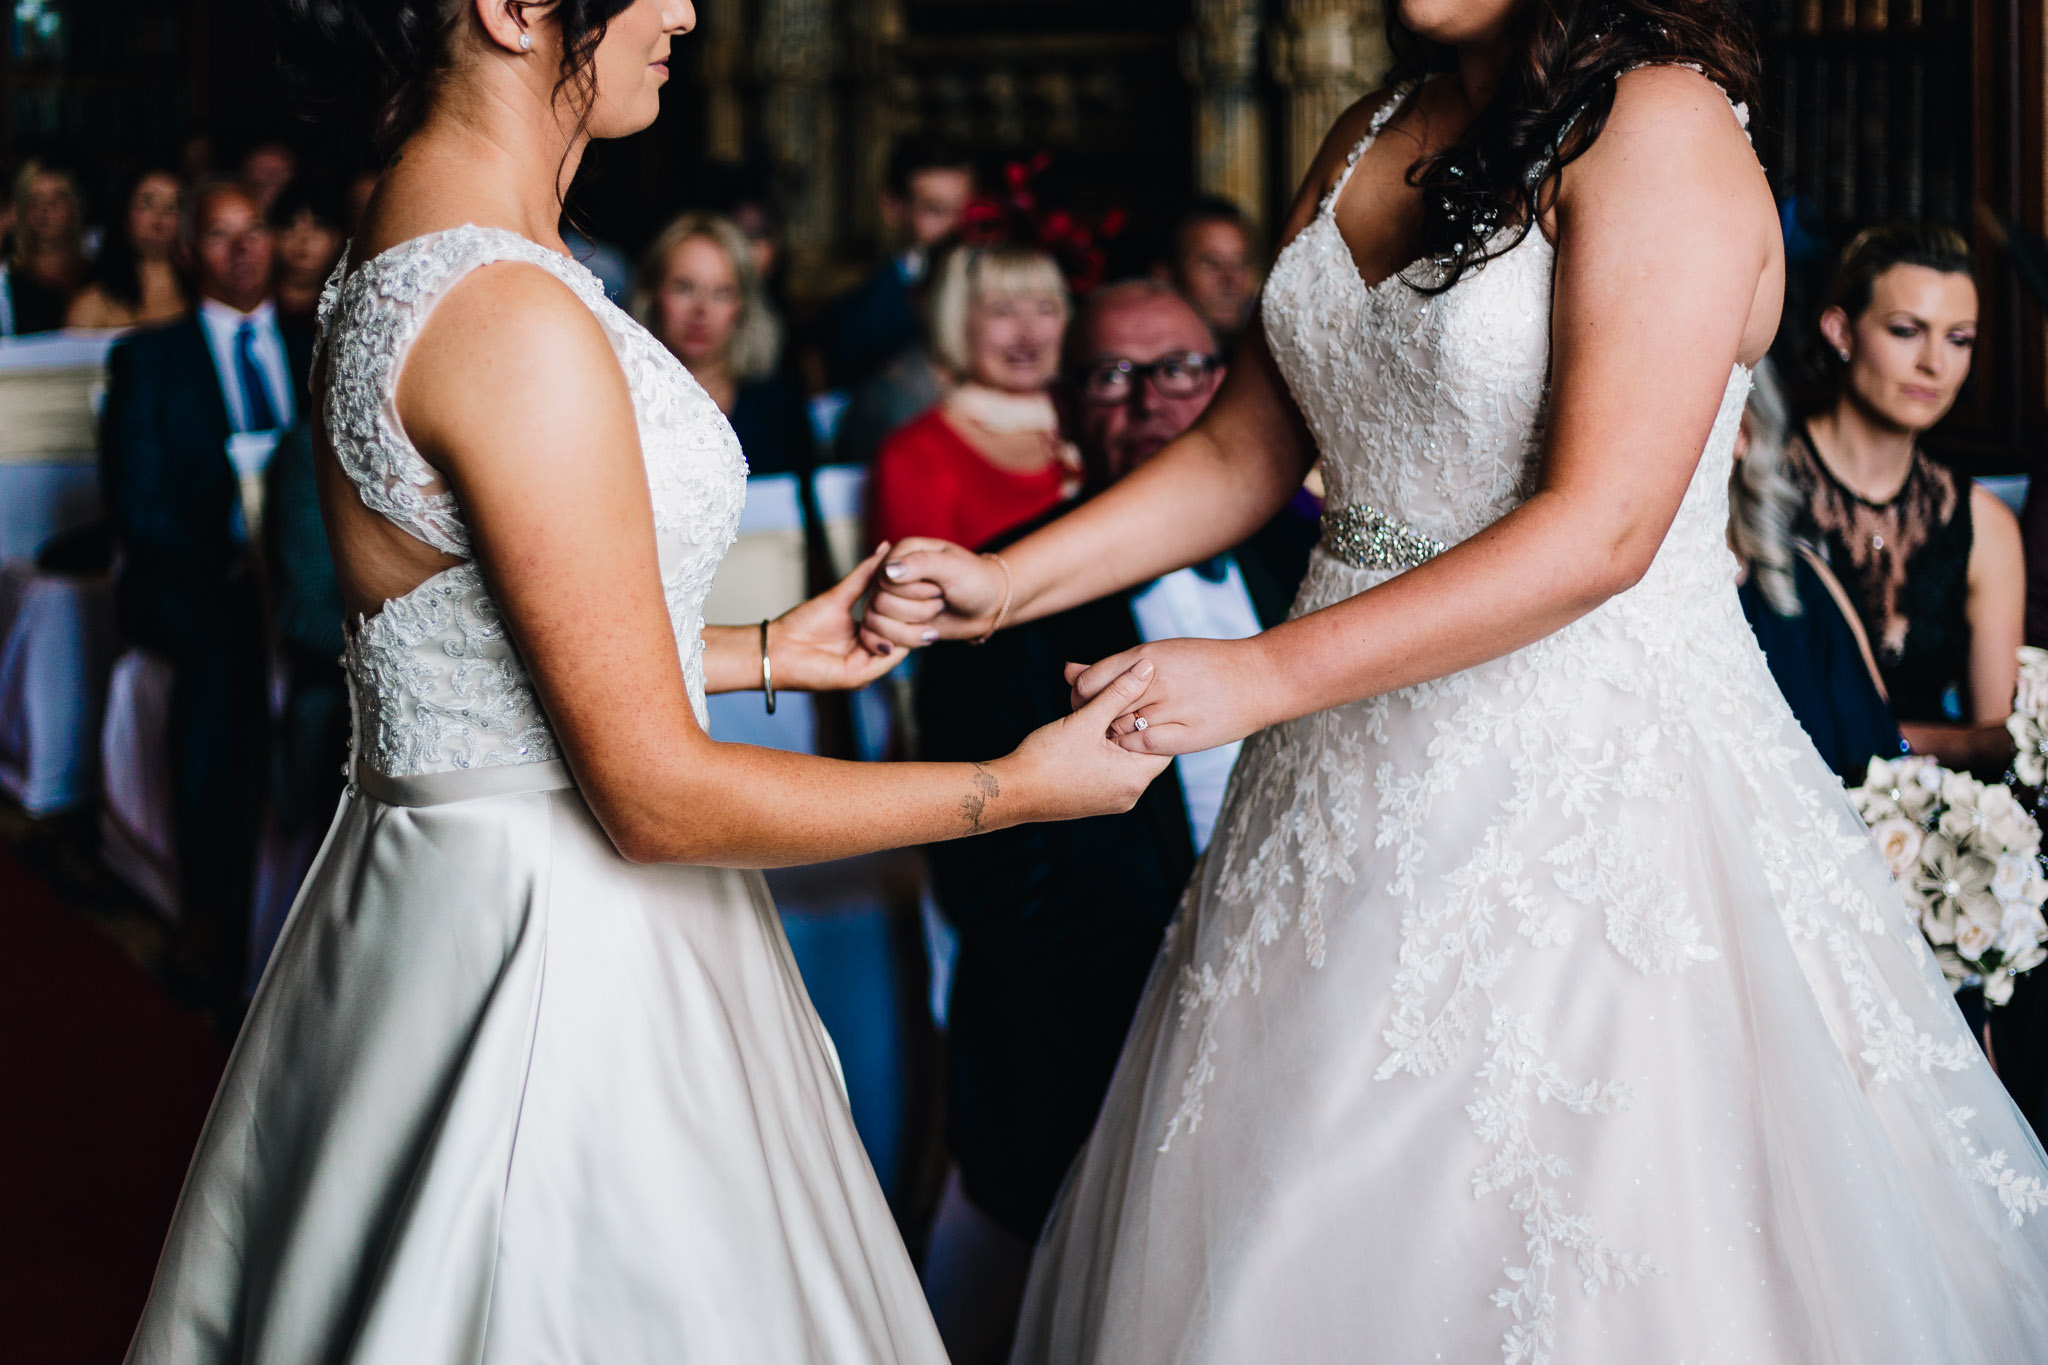 BRIDES HOLDING HANDS AT WEDDING CEREMONY